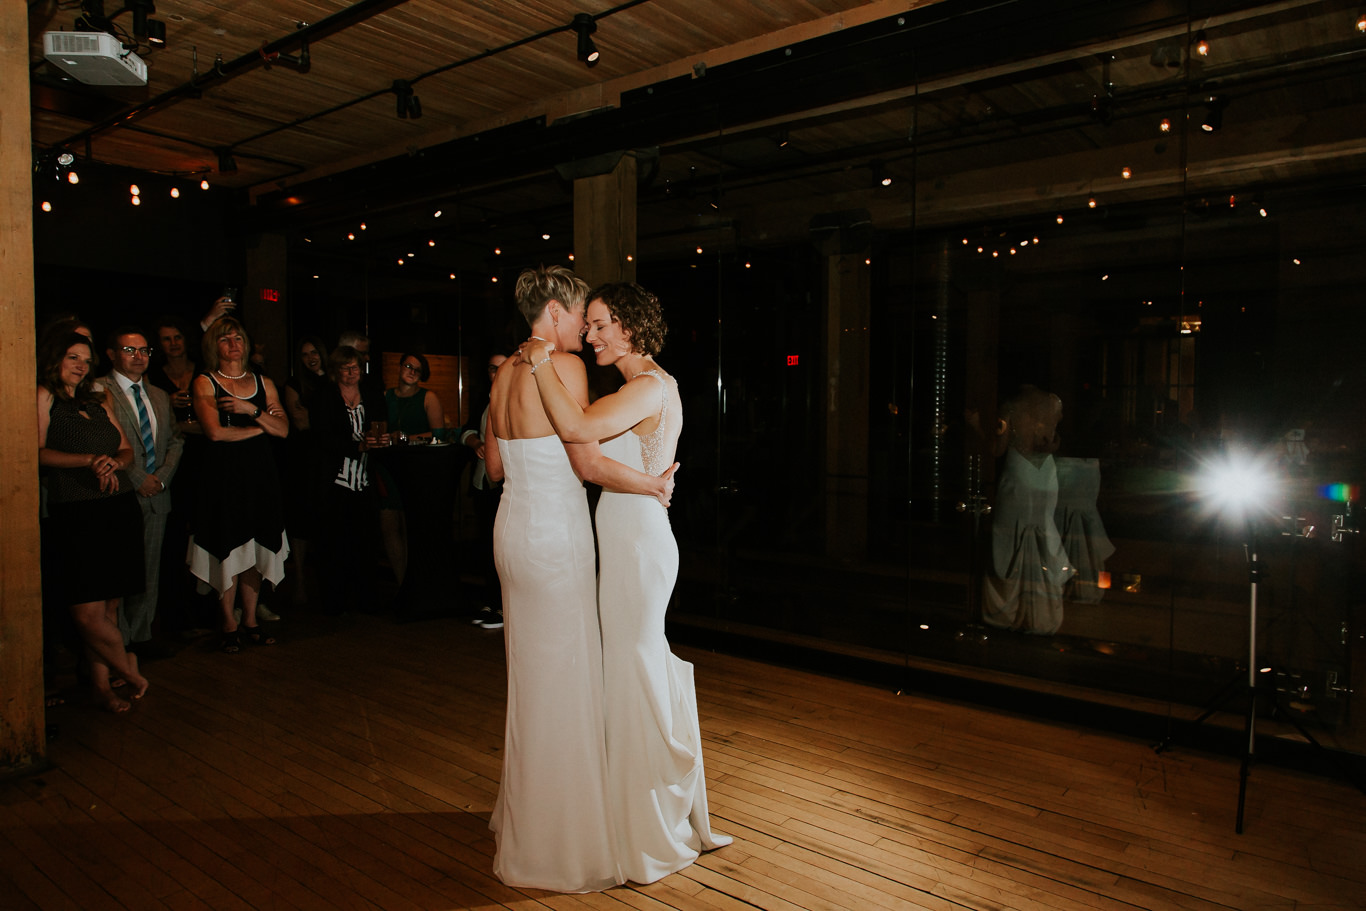 Lindsay-and-Heather-Charbar-Restaurant-Wedding-in-Calgary-206